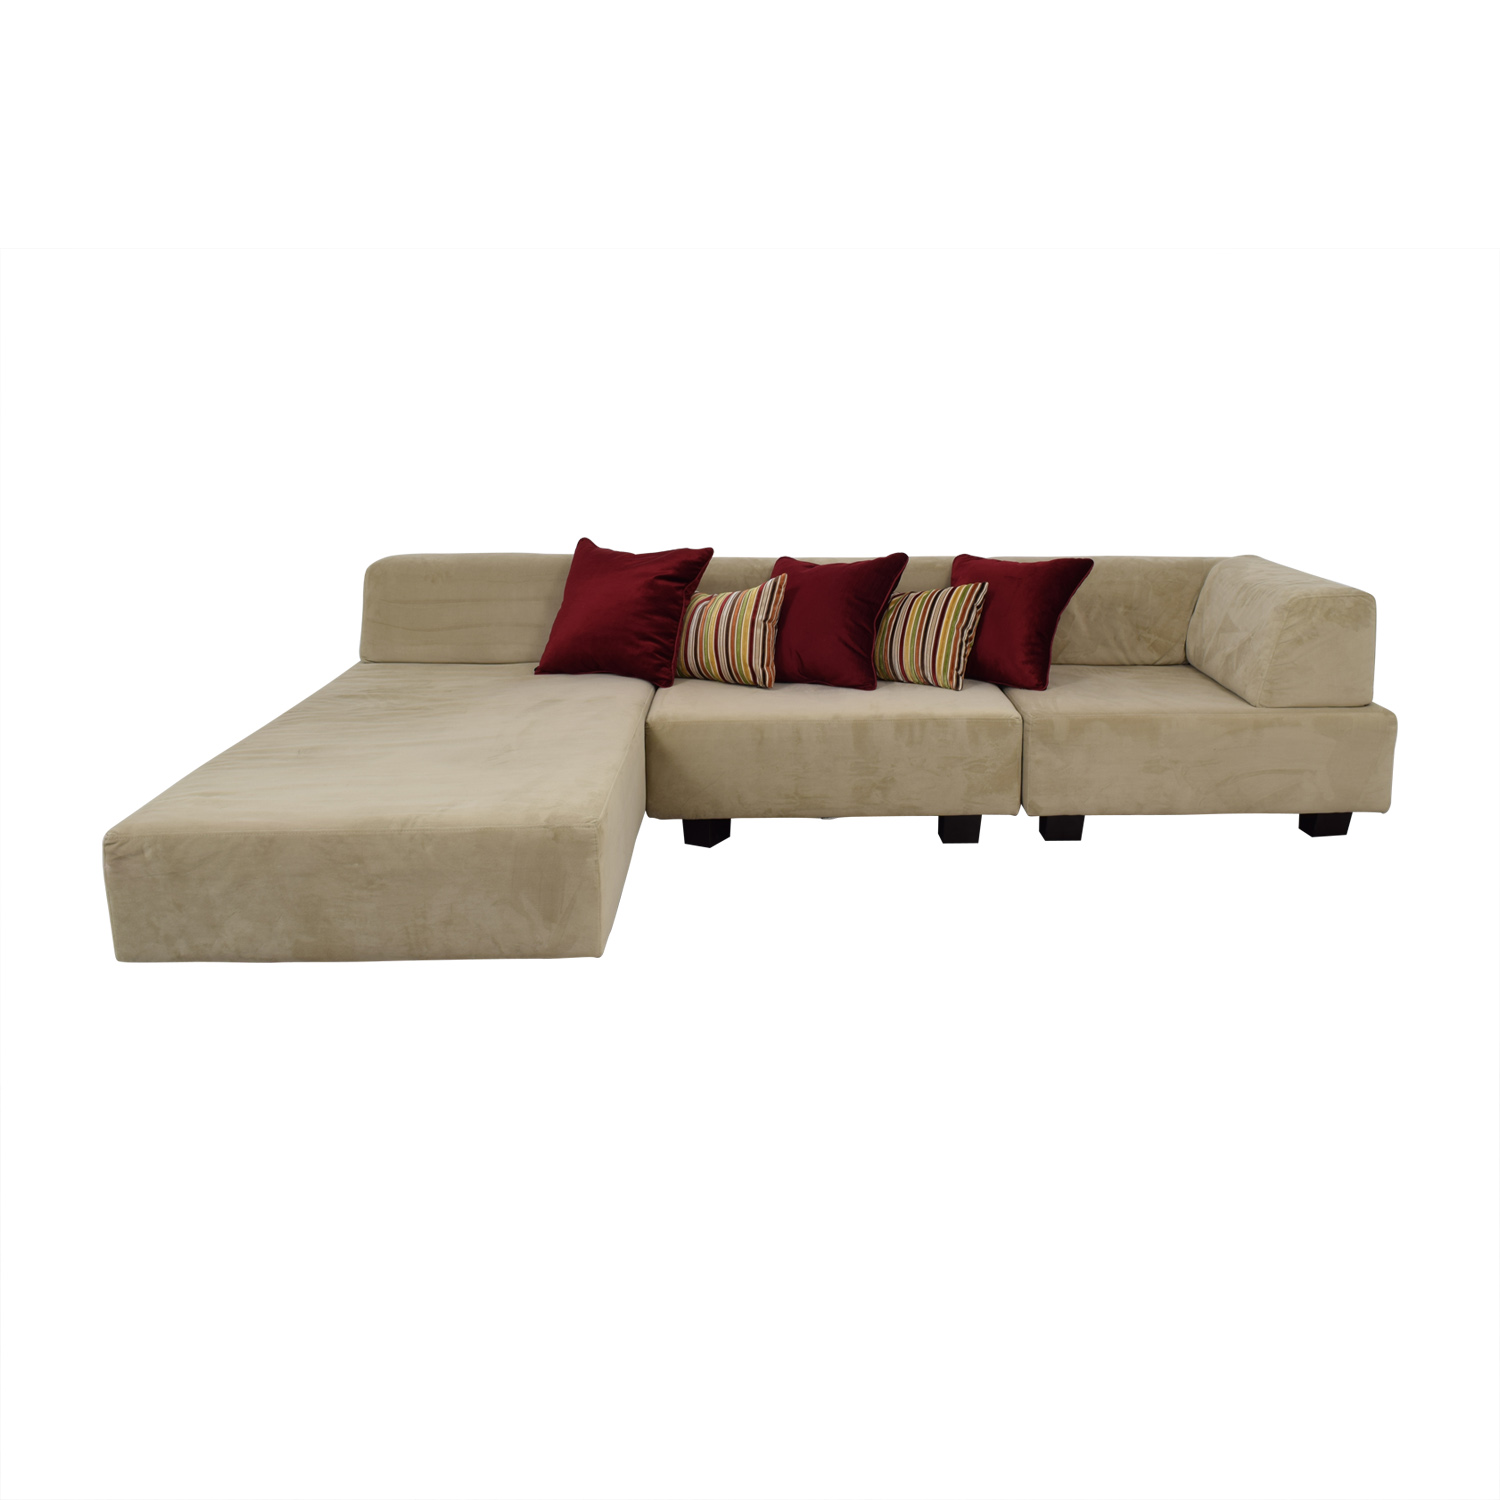 West Elm West Elm Tillary Beige Chaise Sectional used